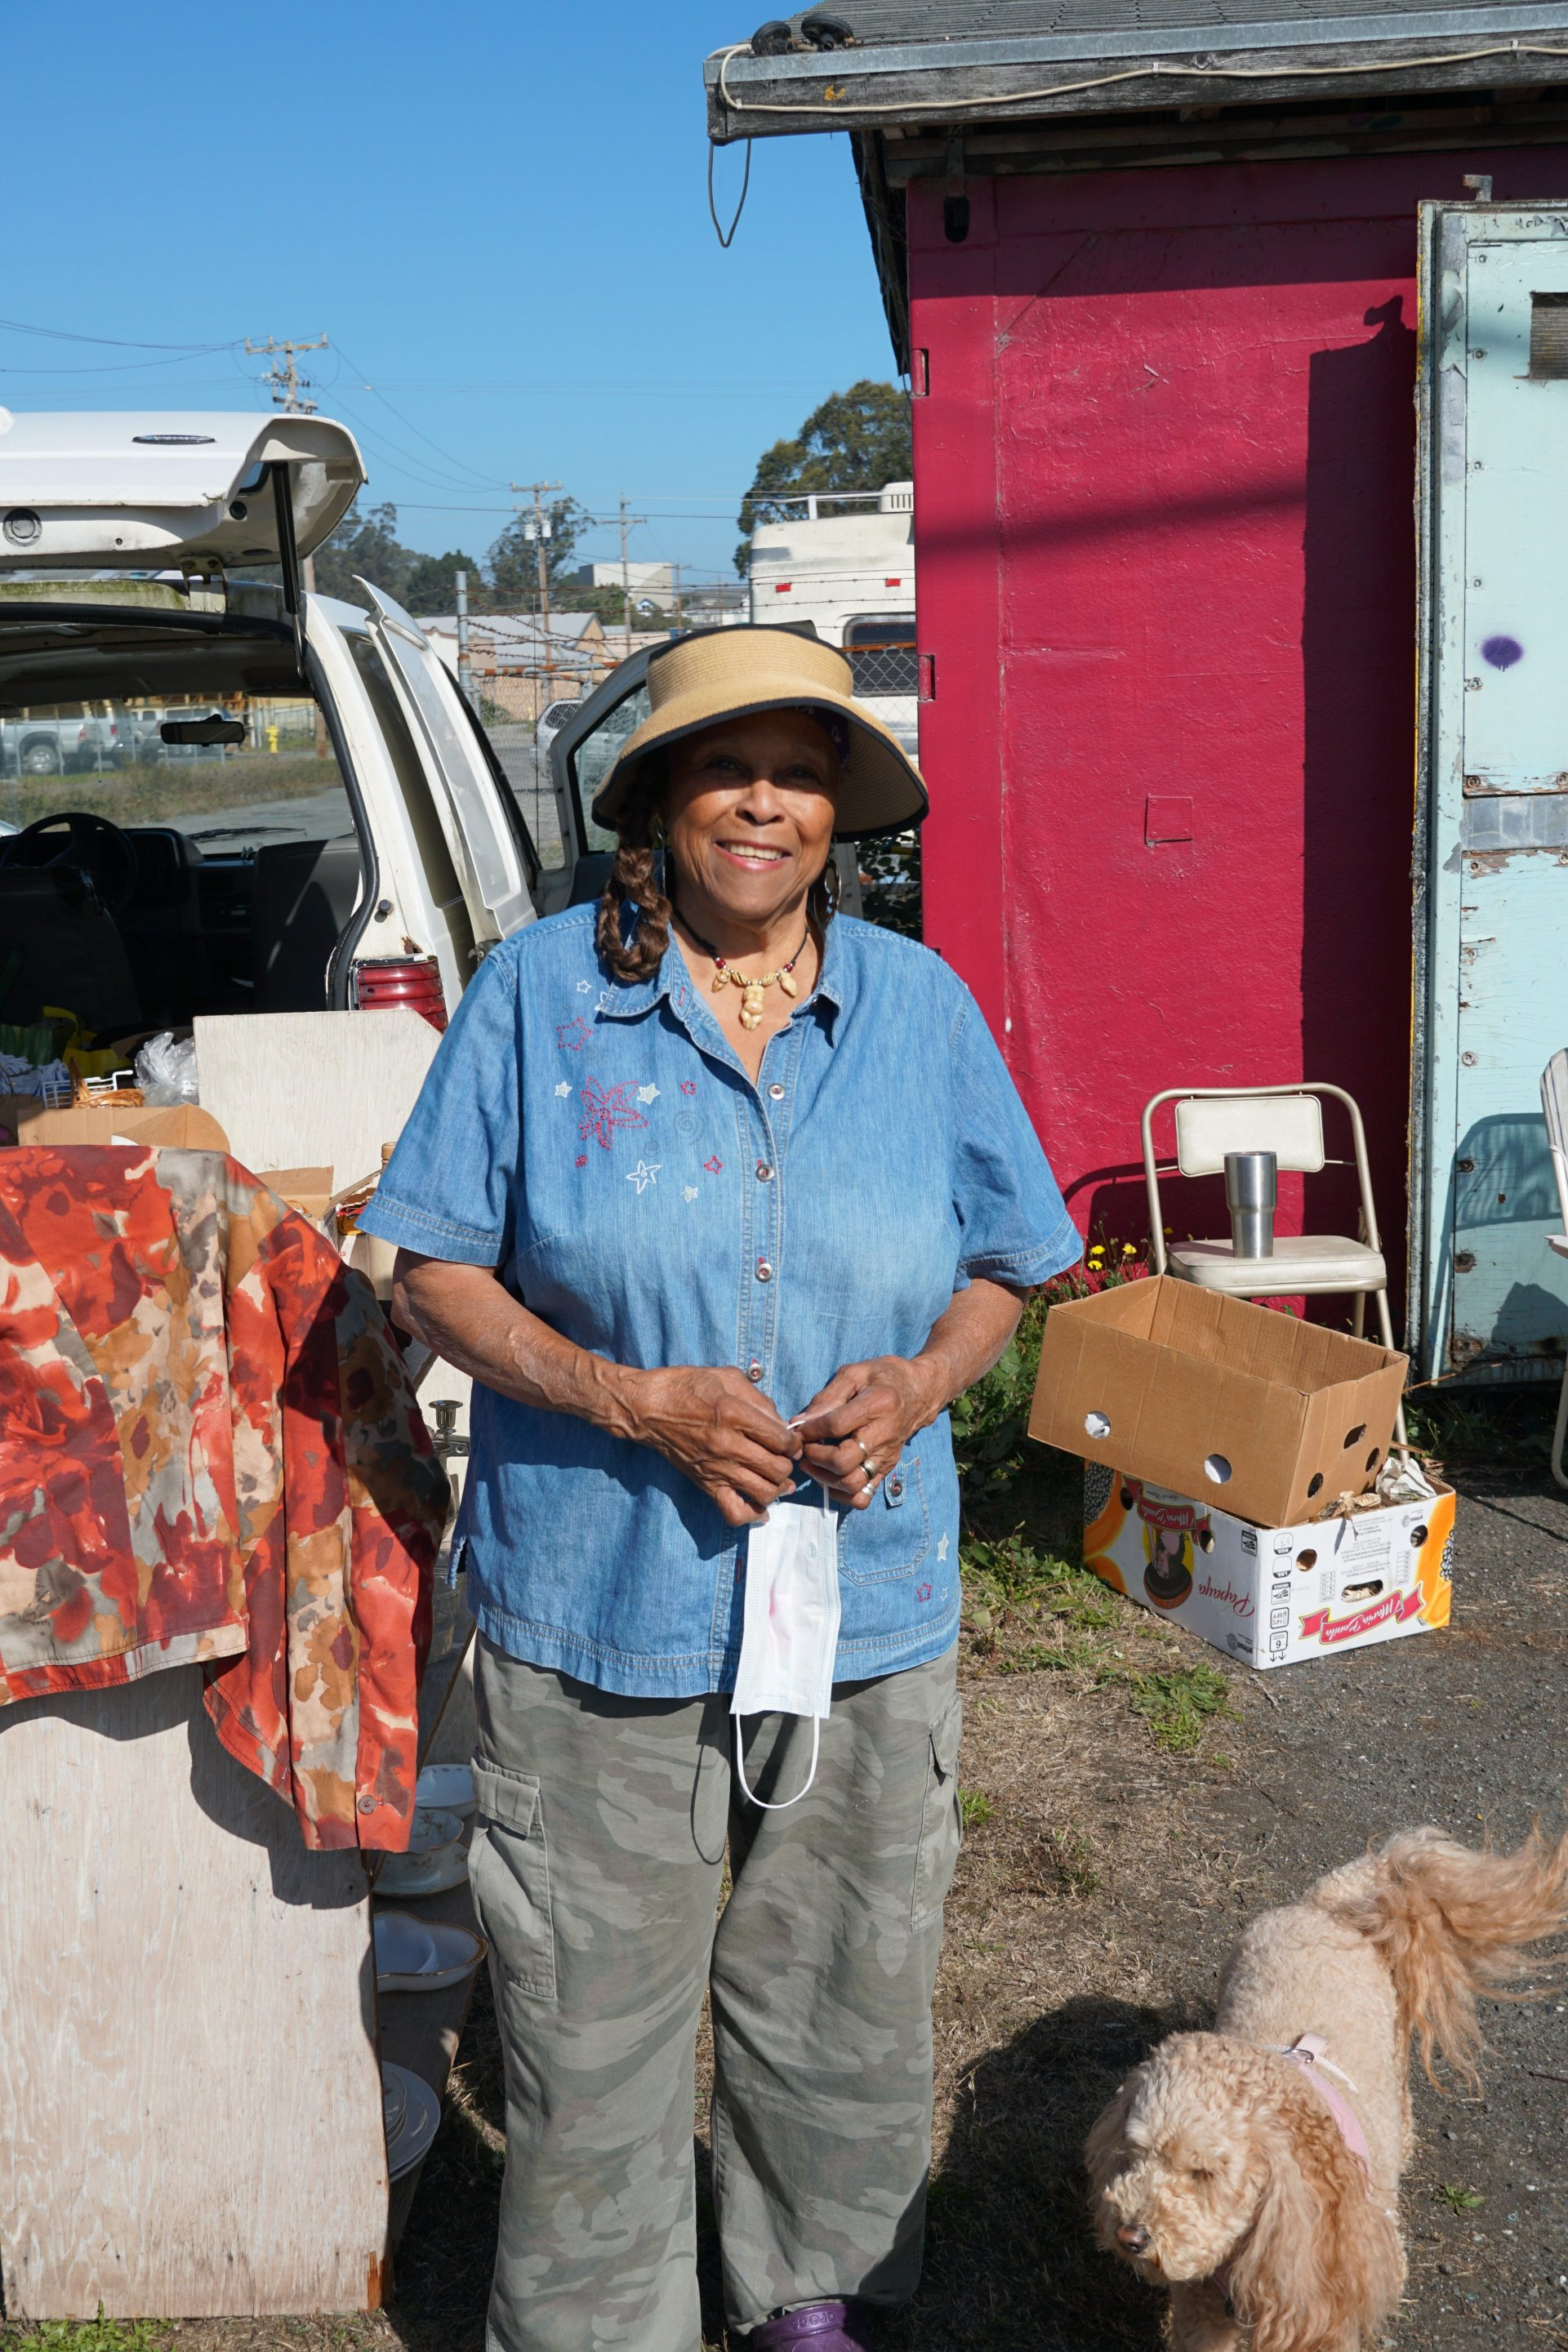 Marie Janisse-Wilkins stands with her dog Gris-Gris at a yard sale of her belongings in Arcata | Photo by Shawn Leon